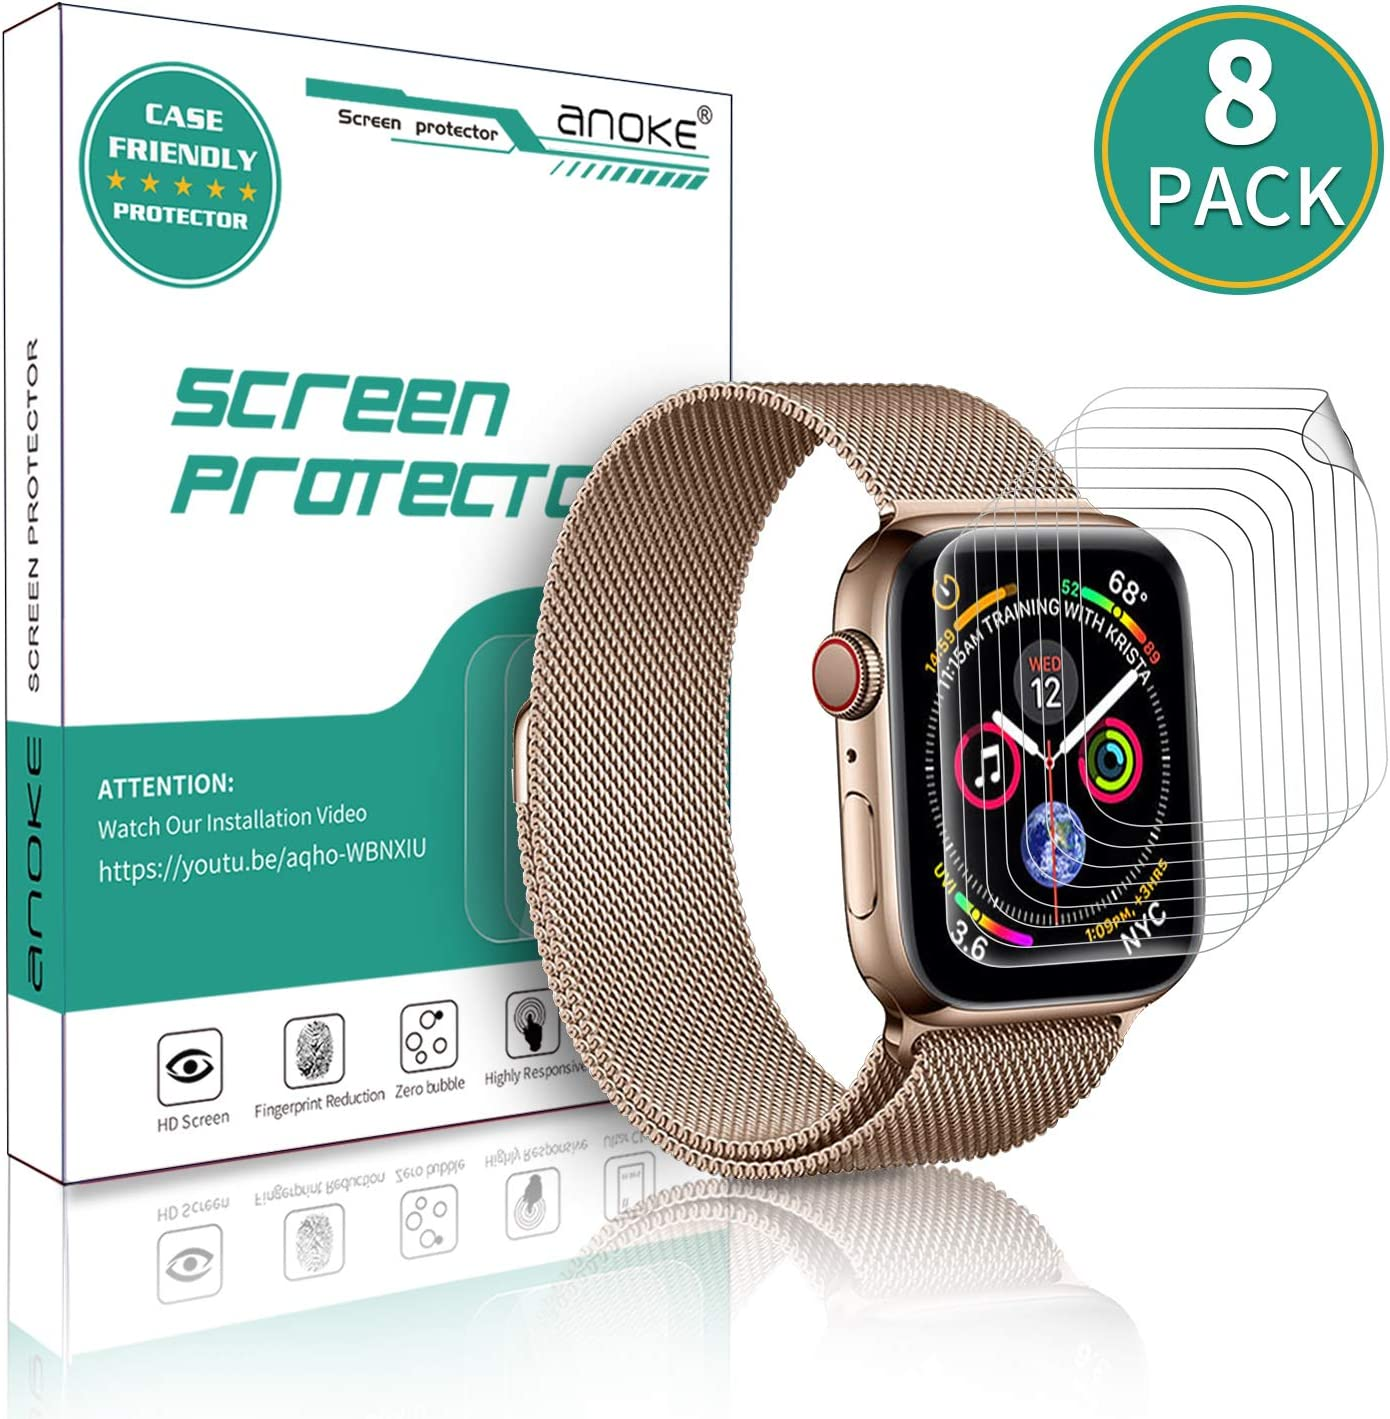 [8 Pack] AnoKe for Apple Watch iWatch 38mm / 40mm Screen Protector (Series 6/SE/5/4 Series 3/2/1),Liquid Skin [Max Coverage] Curved Edge Case Band Friendly Lifetime Replacement Warranty 38mm /40mm